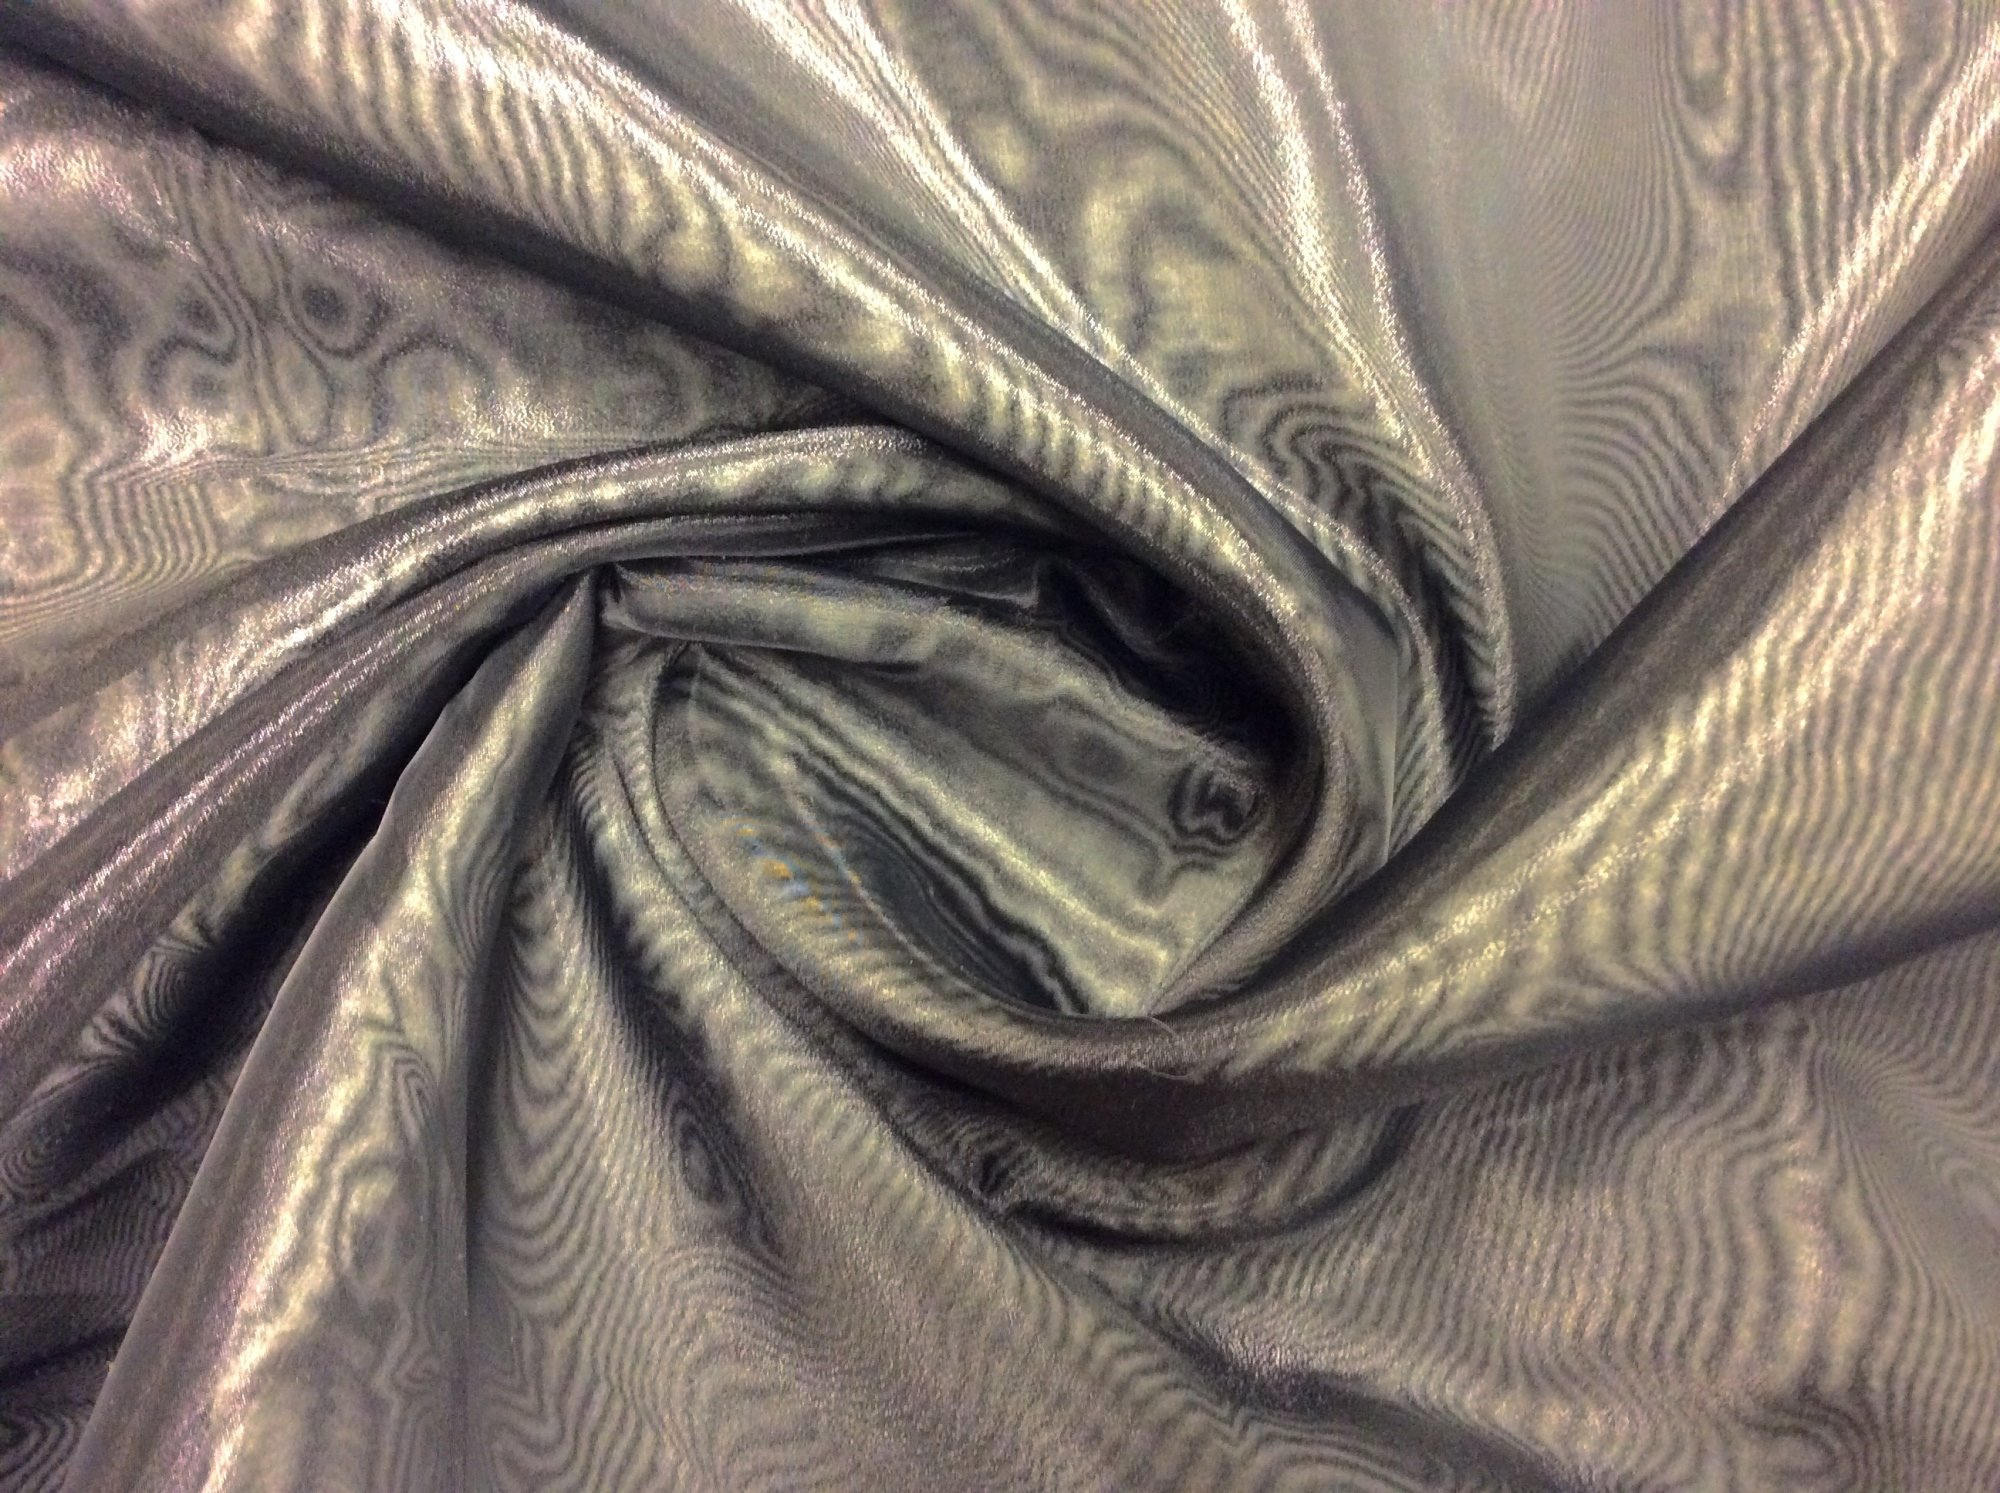 Black Polyester Organza Extra Wide Window Sheer Apparel Fabric ETX099